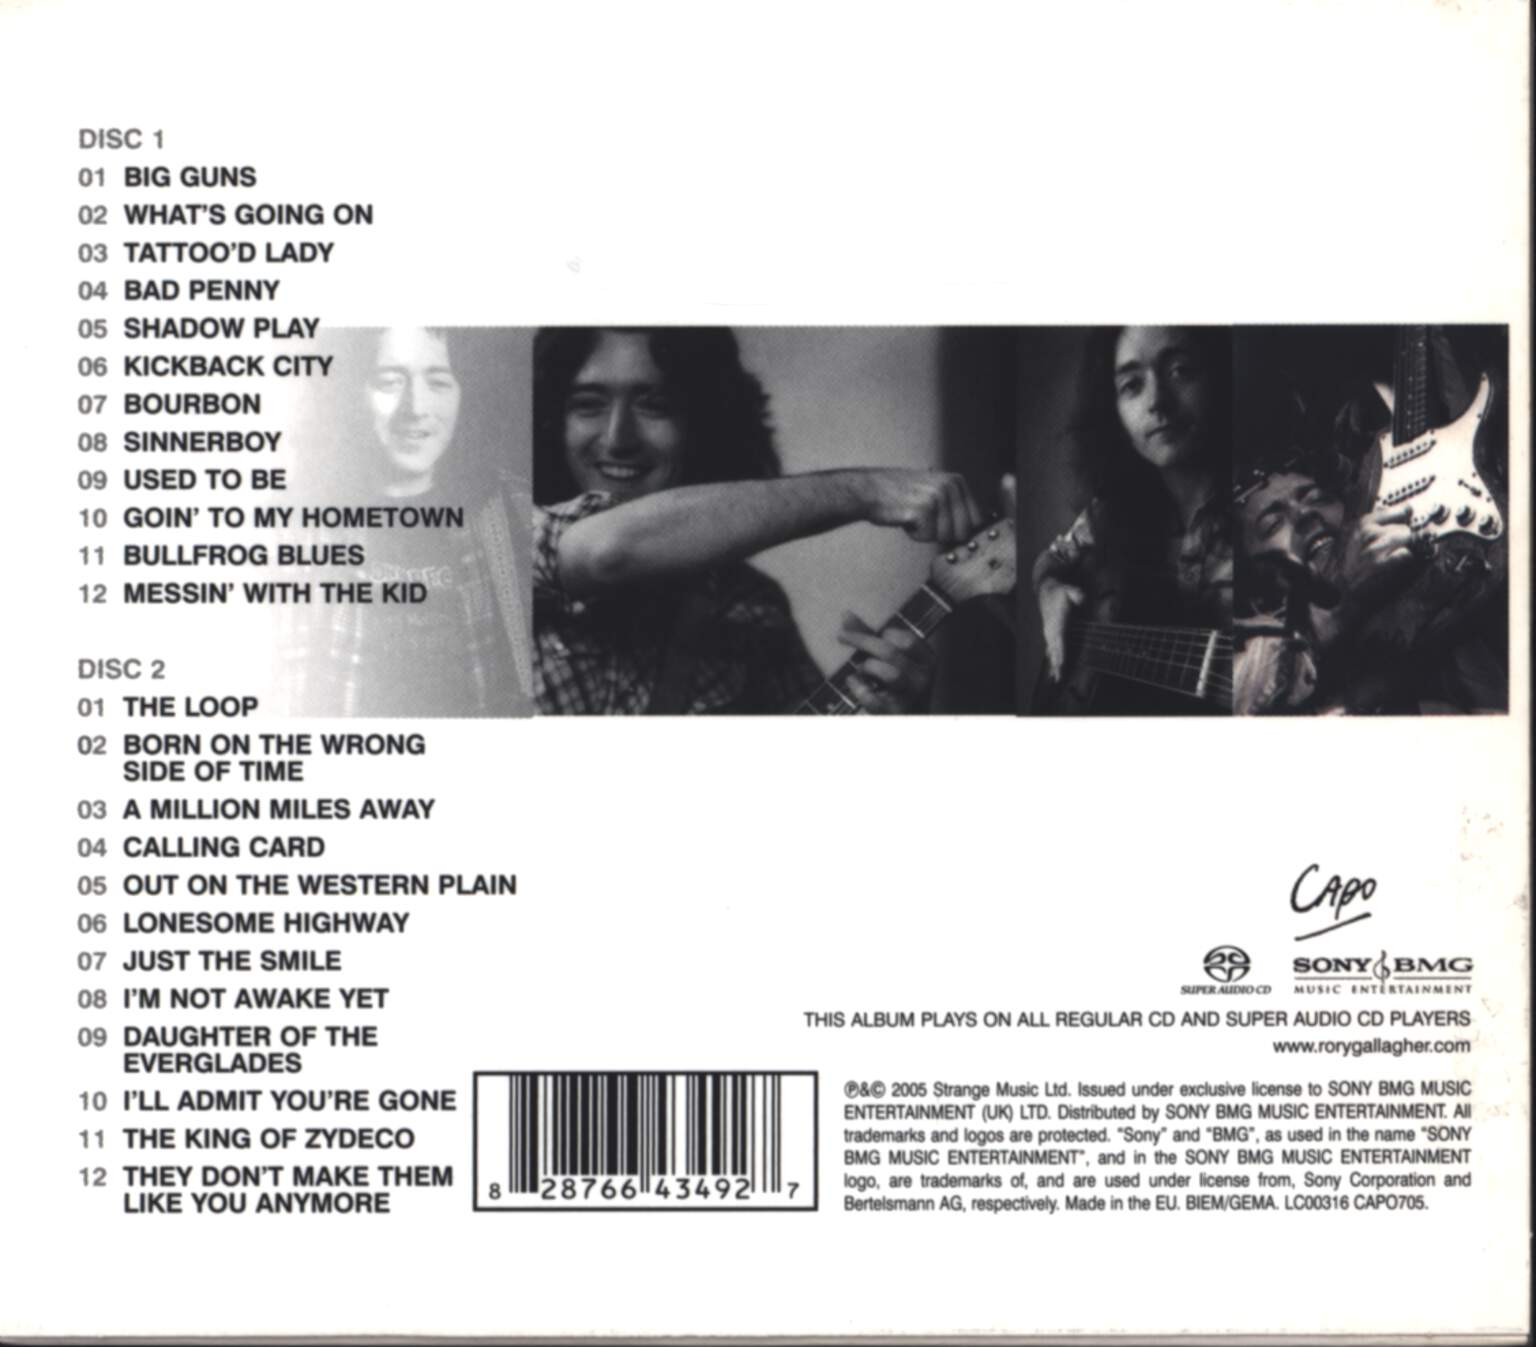 Rory Gallagher: Big Guns - The Very Best Of Rory Gallagher, CD